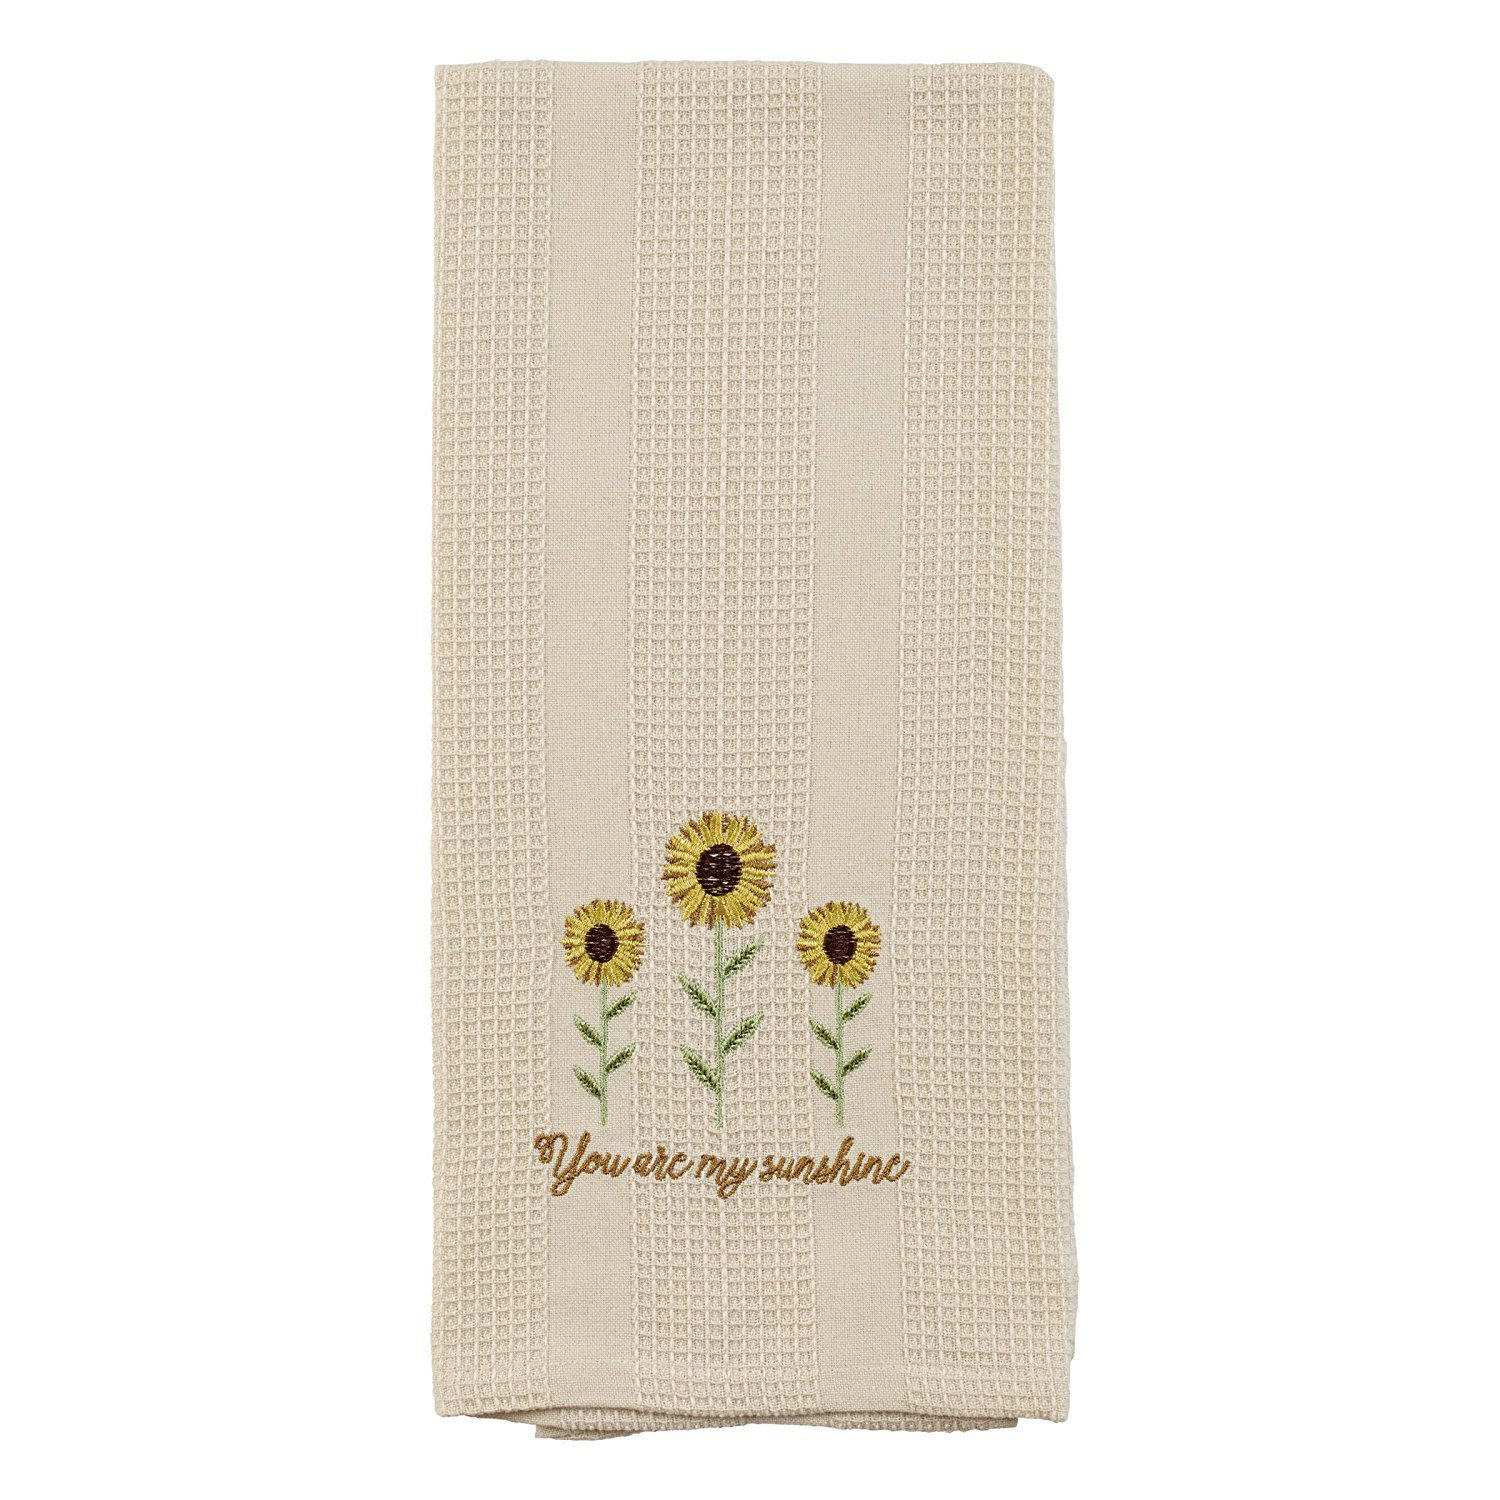 Cream You Are My Sunshine Sunflower 19 x 28 Inch Embroidered Cotton Waffle Dish Towel